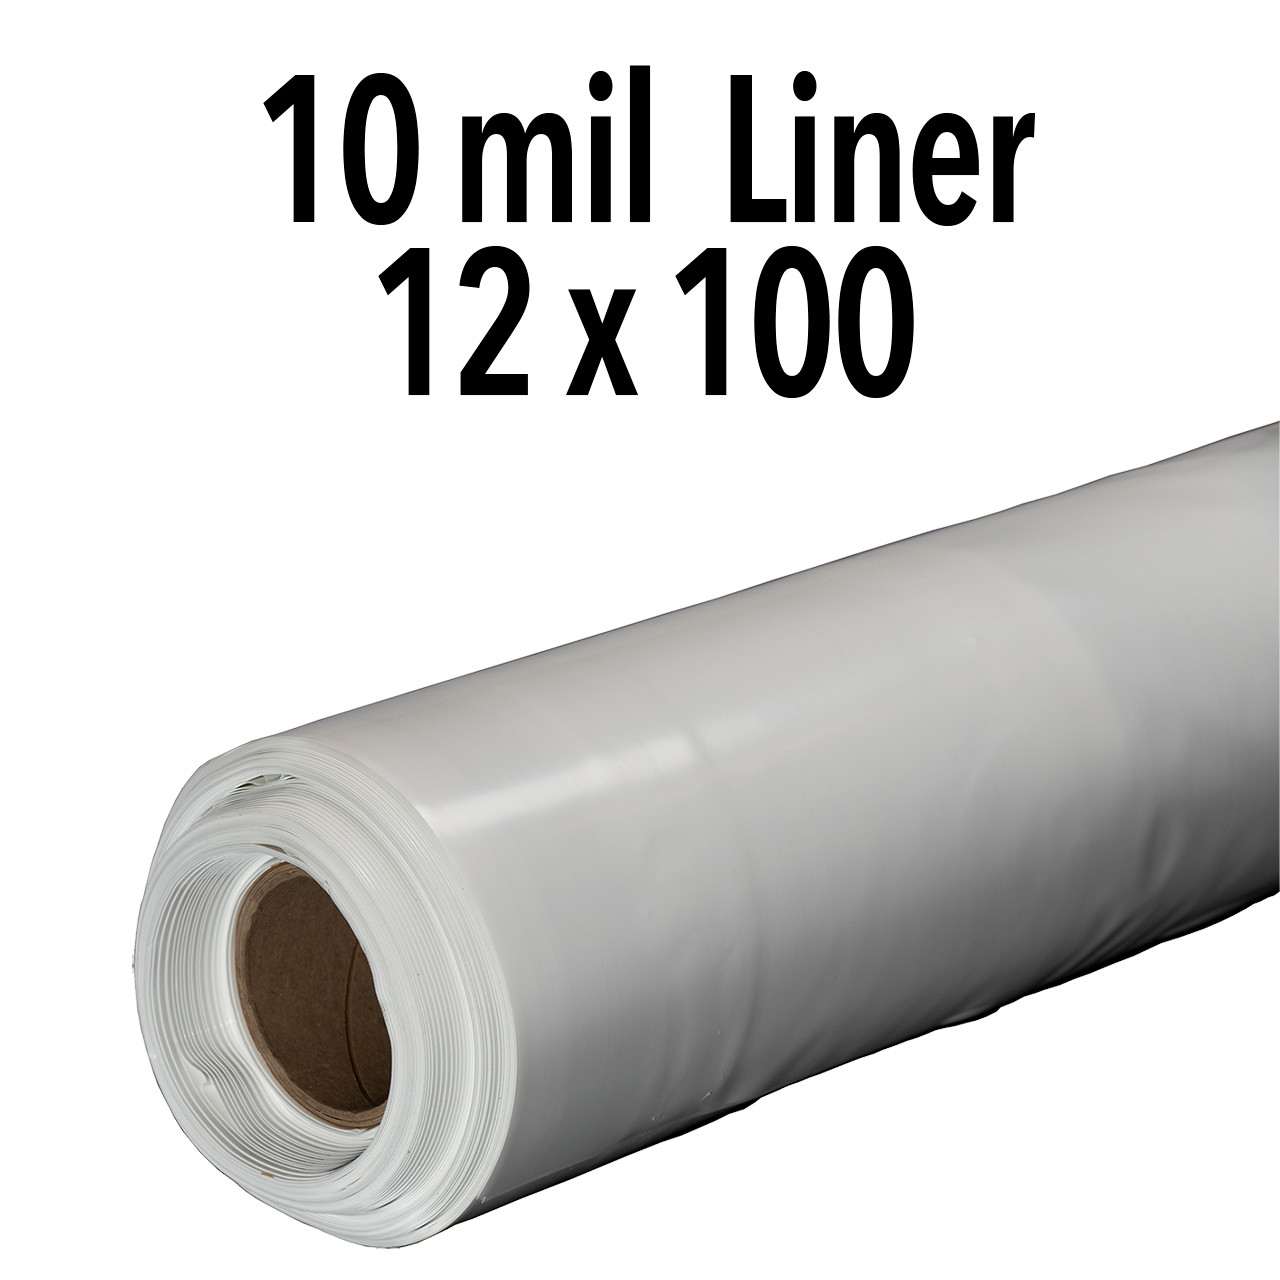 10 Mil Non-Reinforced Crawl Space Liner - 12' X 100' Roll